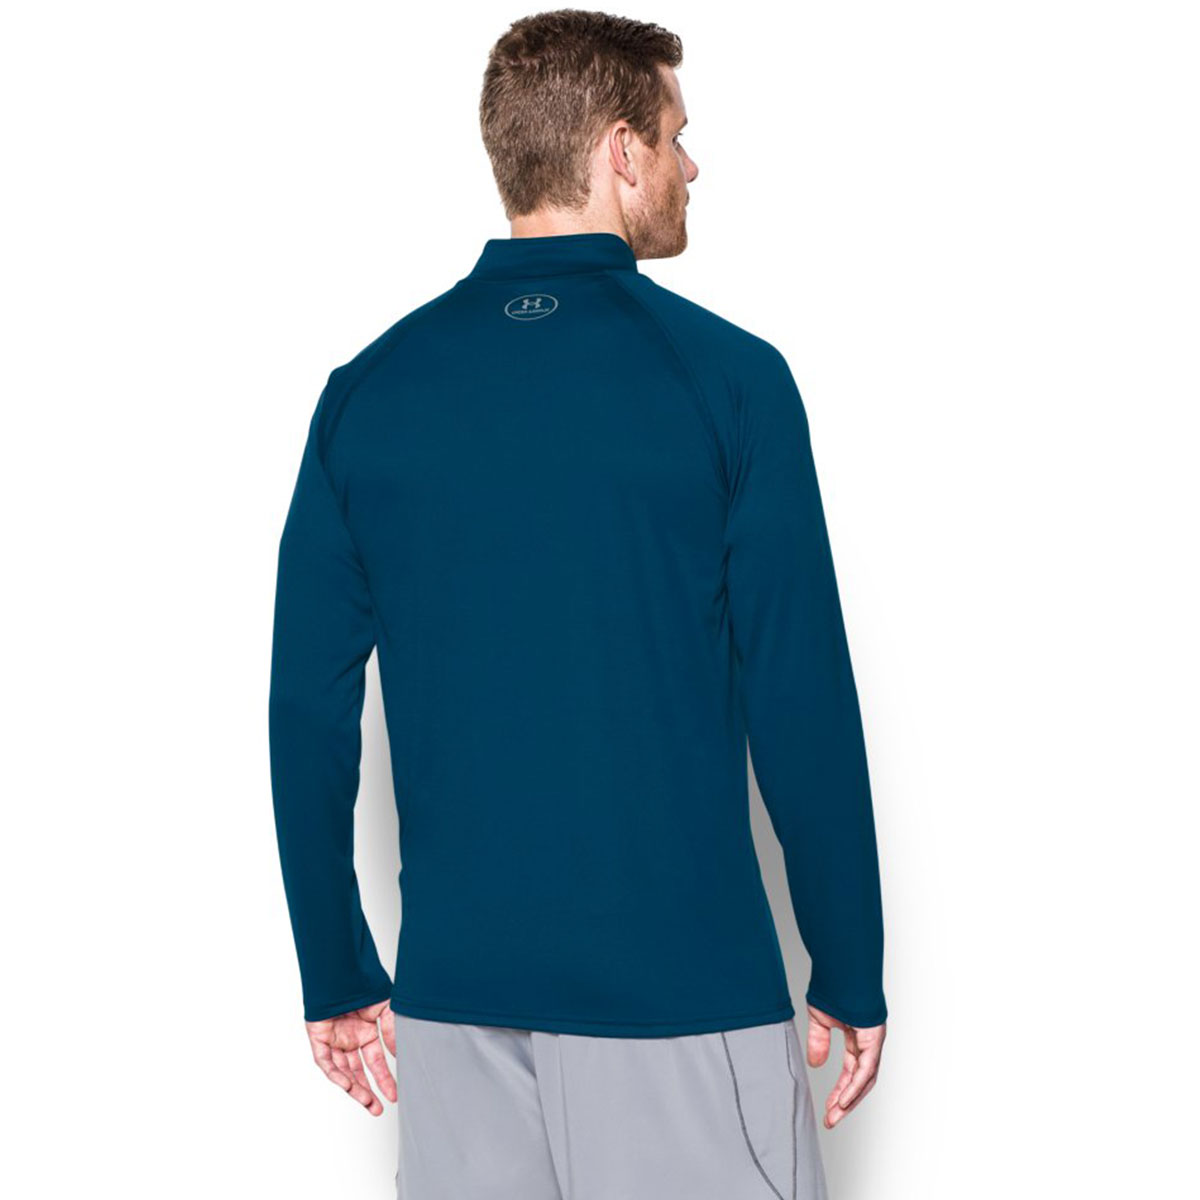 Under-Armour-Mens-UA-Tech-1-4-Zip-Long-Sleeve-Top-Workout-Layer-27-OFF-RRP thumbnail 31